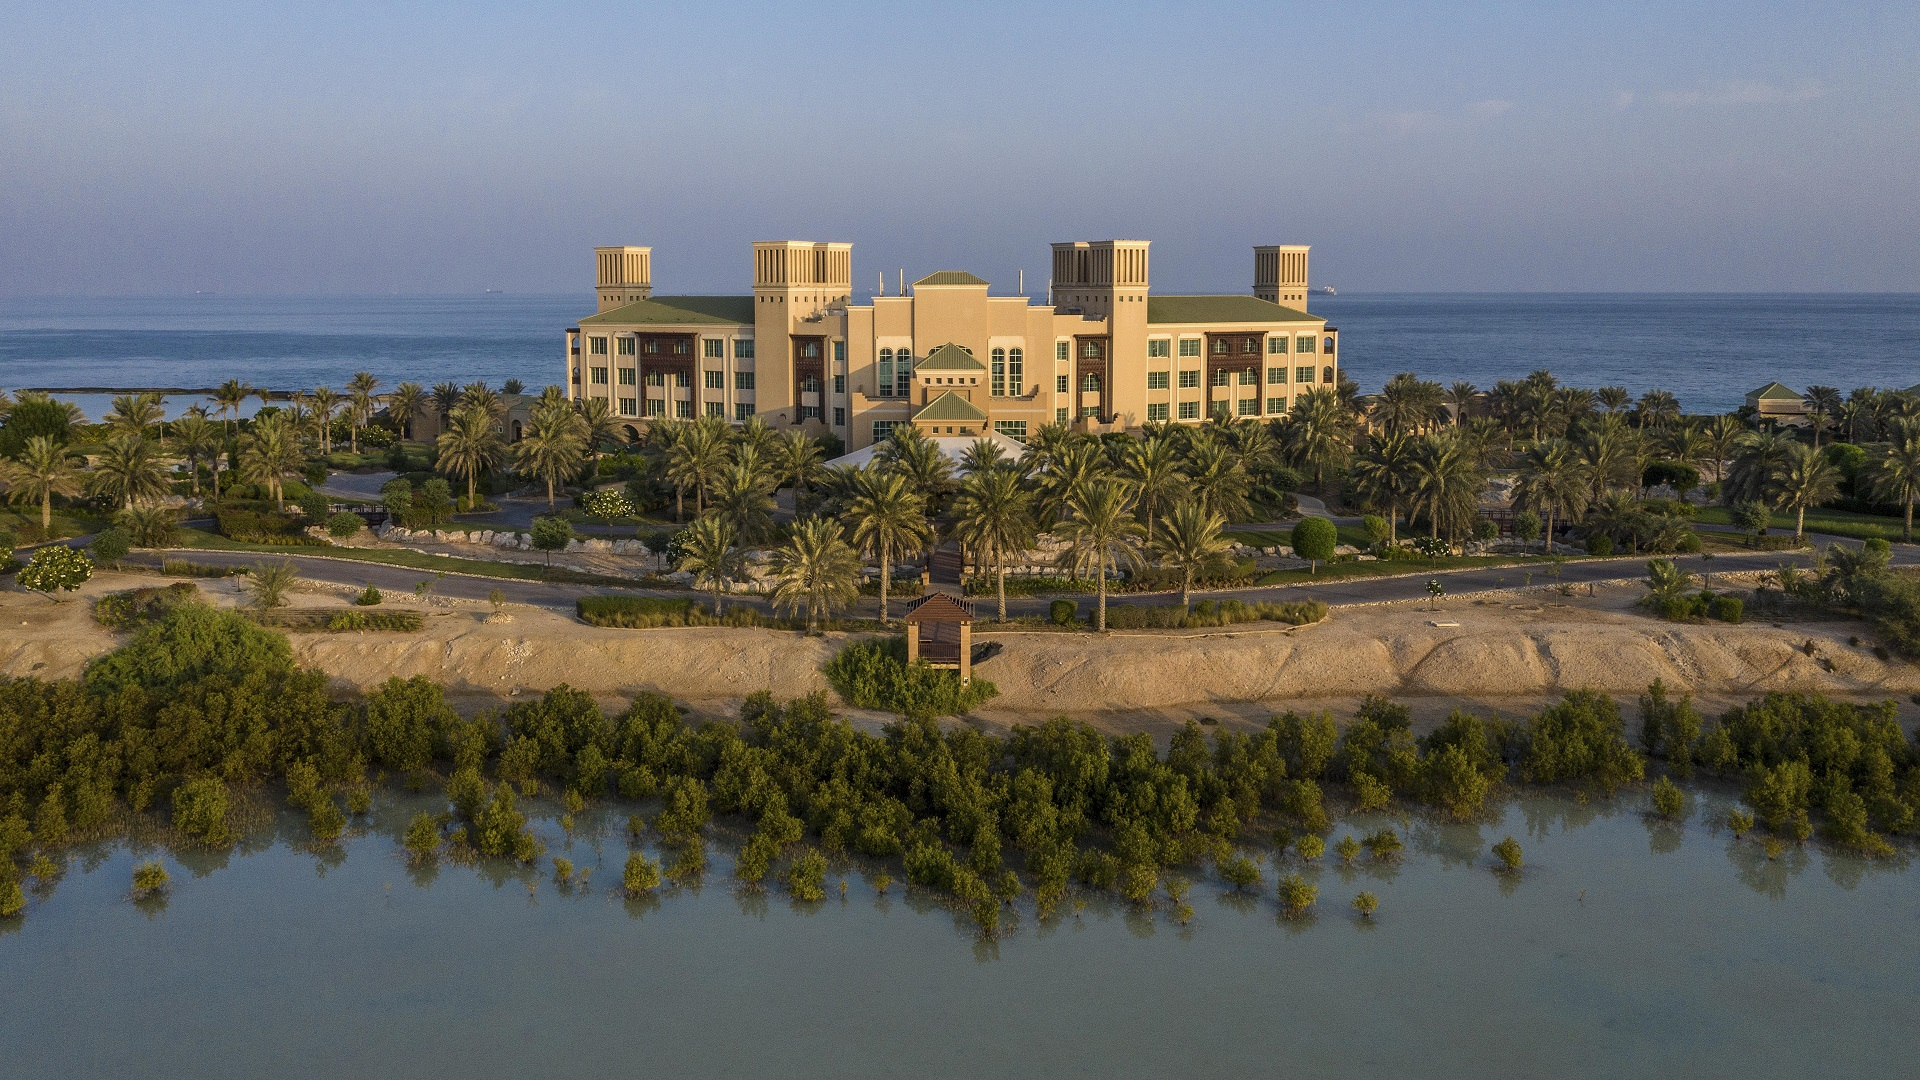 Desert_Islands_ Resort _and_ spa _by_ Anantara _Exterior_View_Daylight_Aerial 1920 * 1080